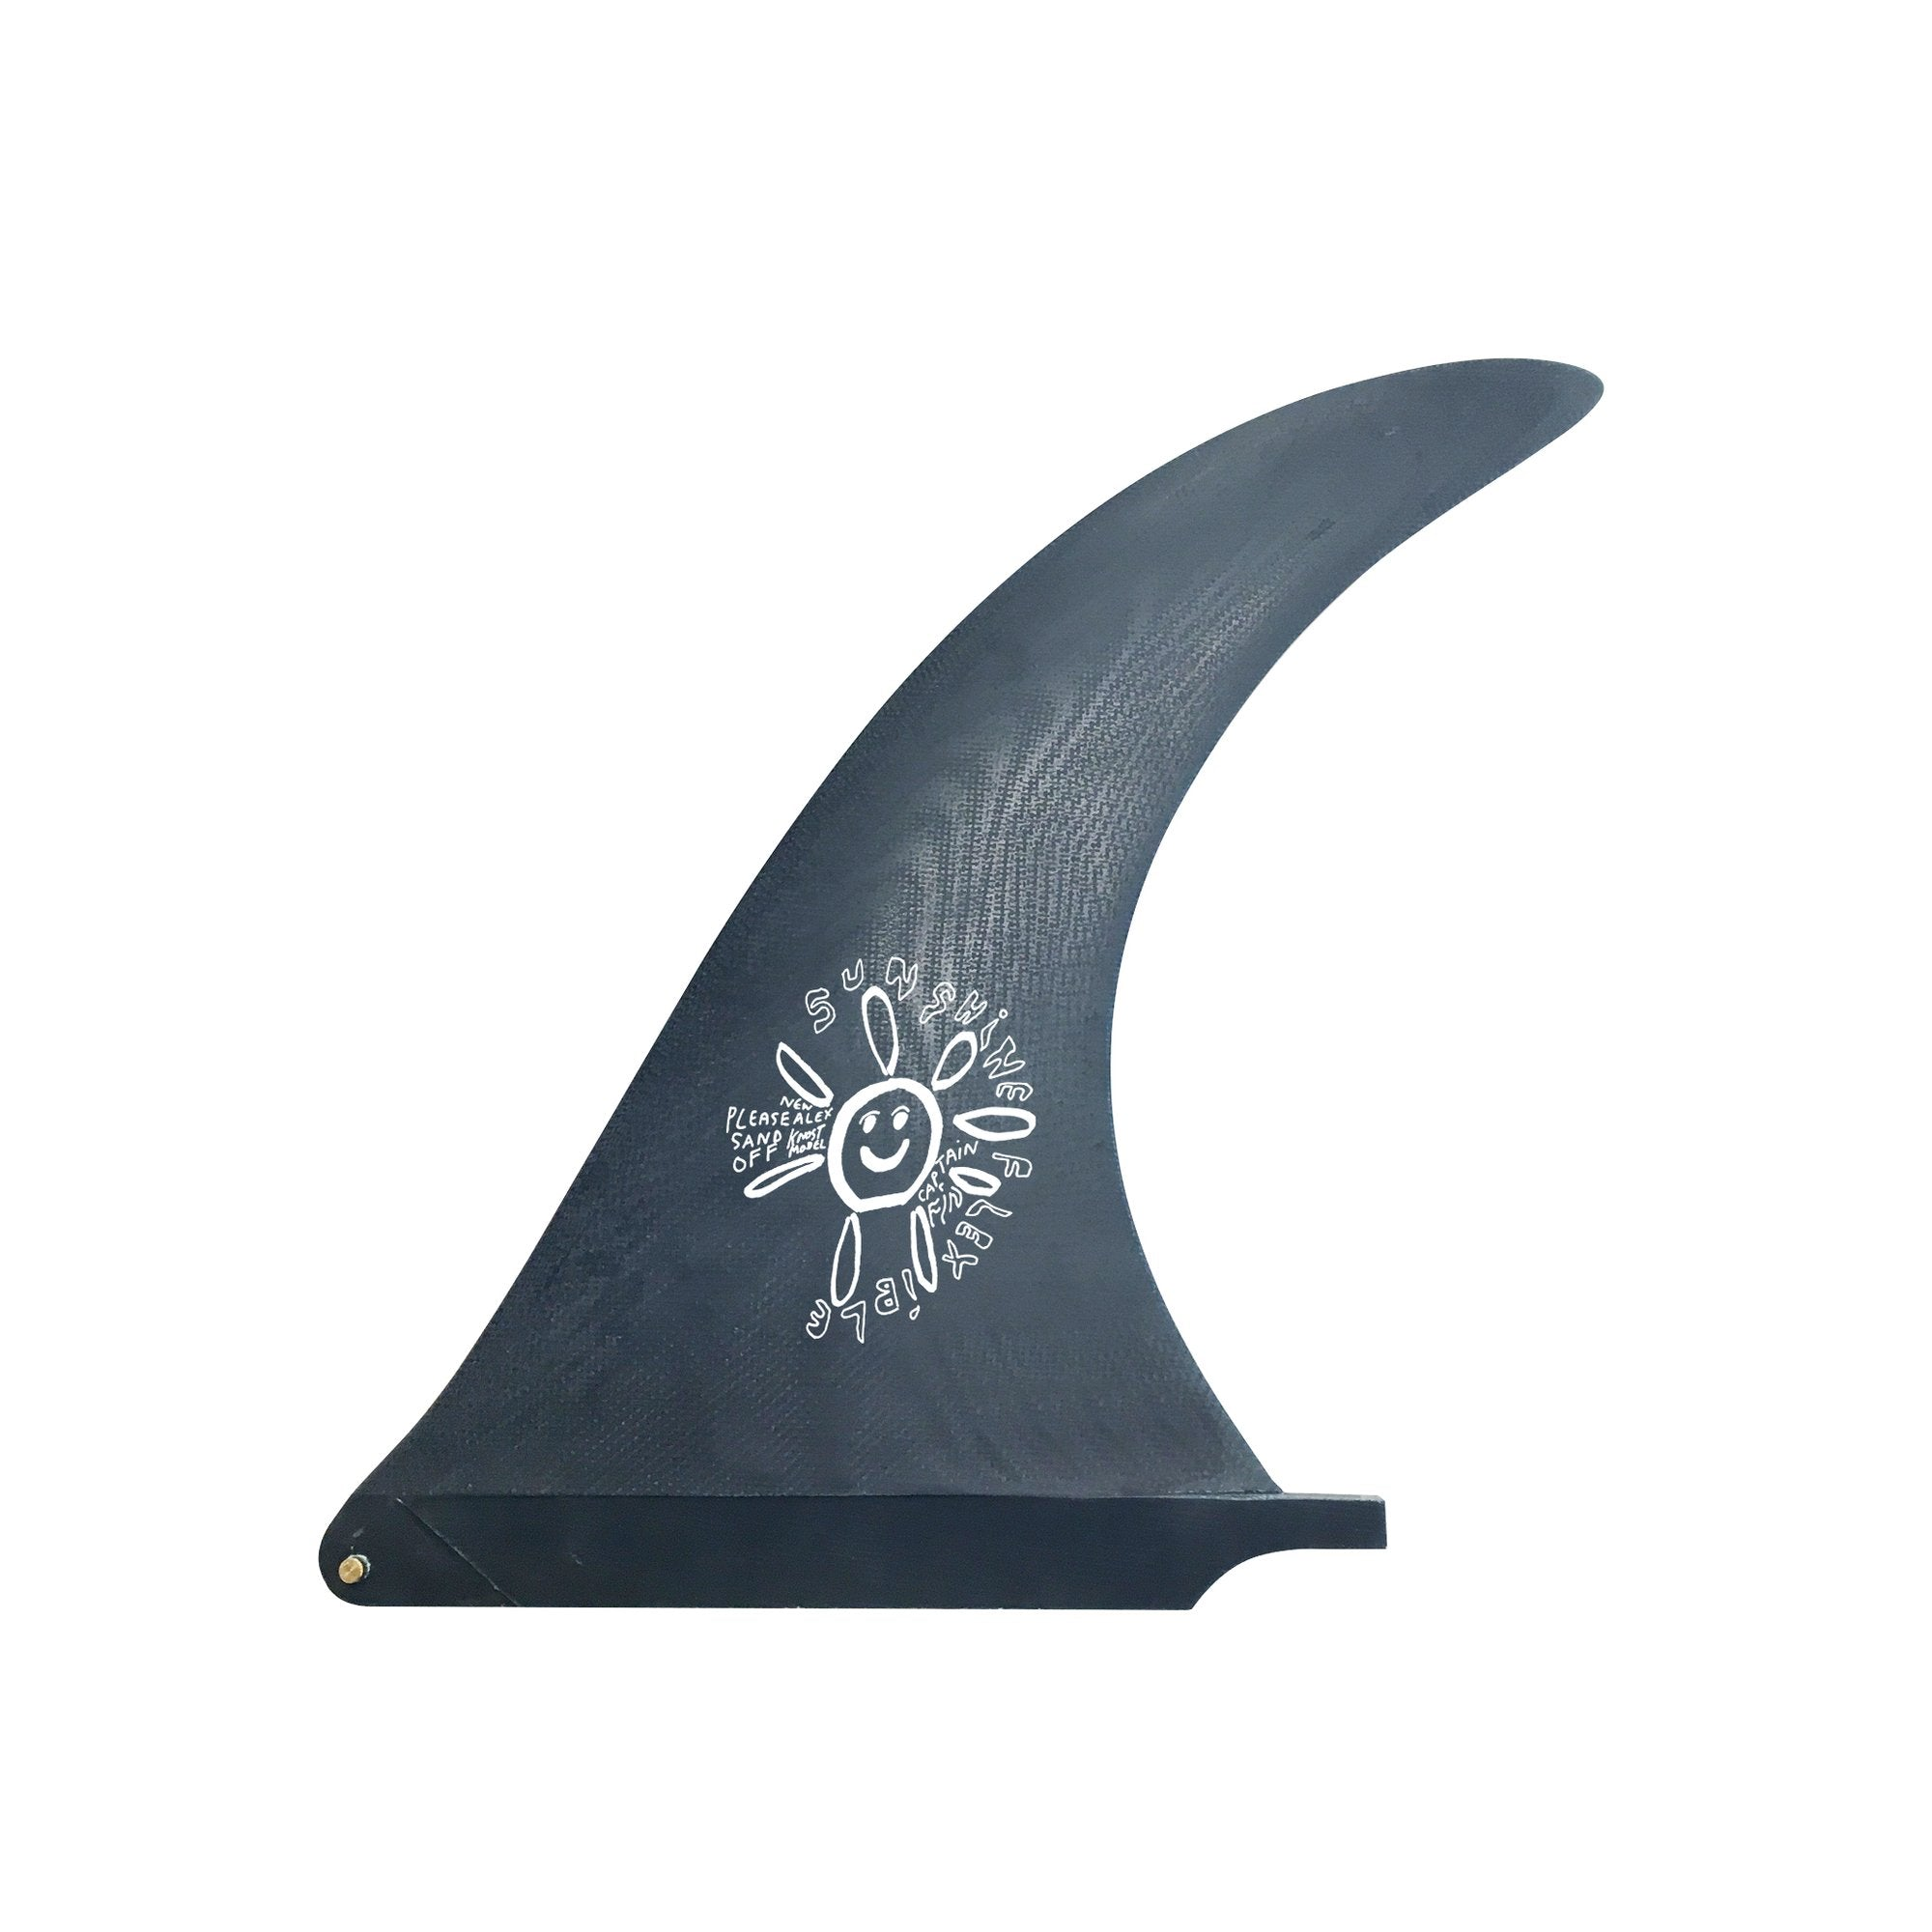 "Captain Fin Alex Knost 10"" Sunshine Fin - BLUE"